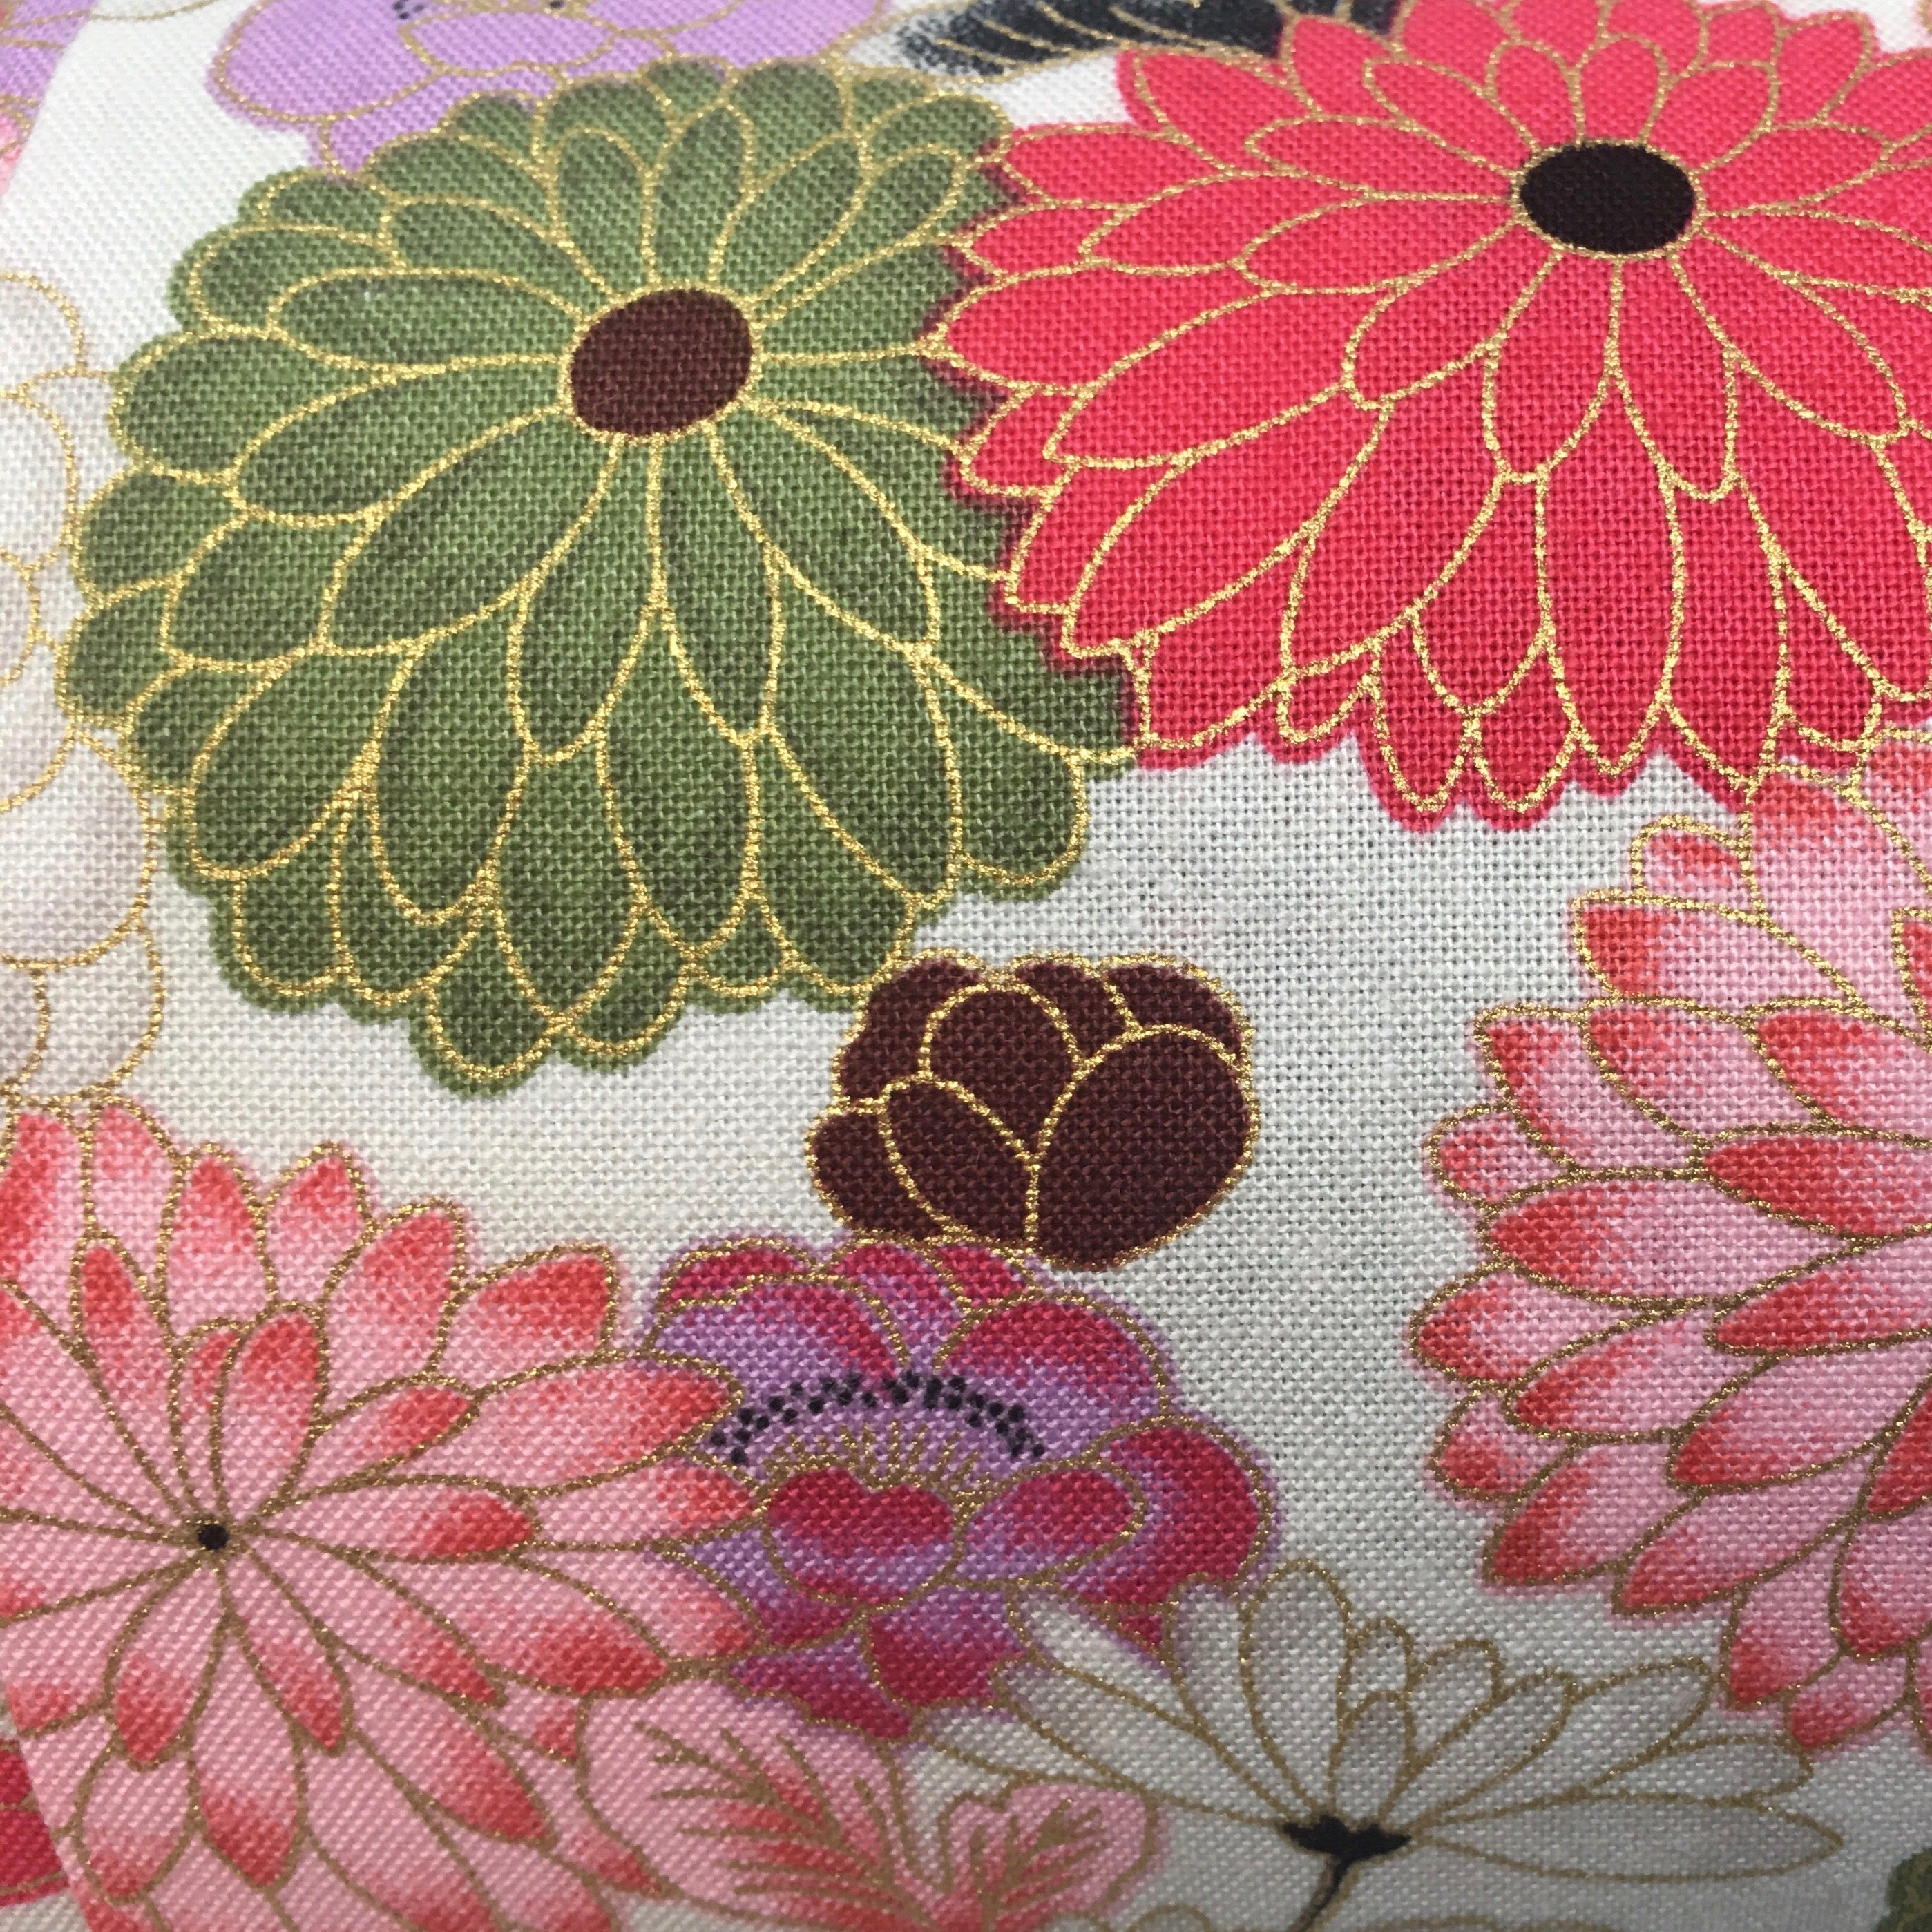 Chrysanthemums-  Pillow Pocket for your Intentions